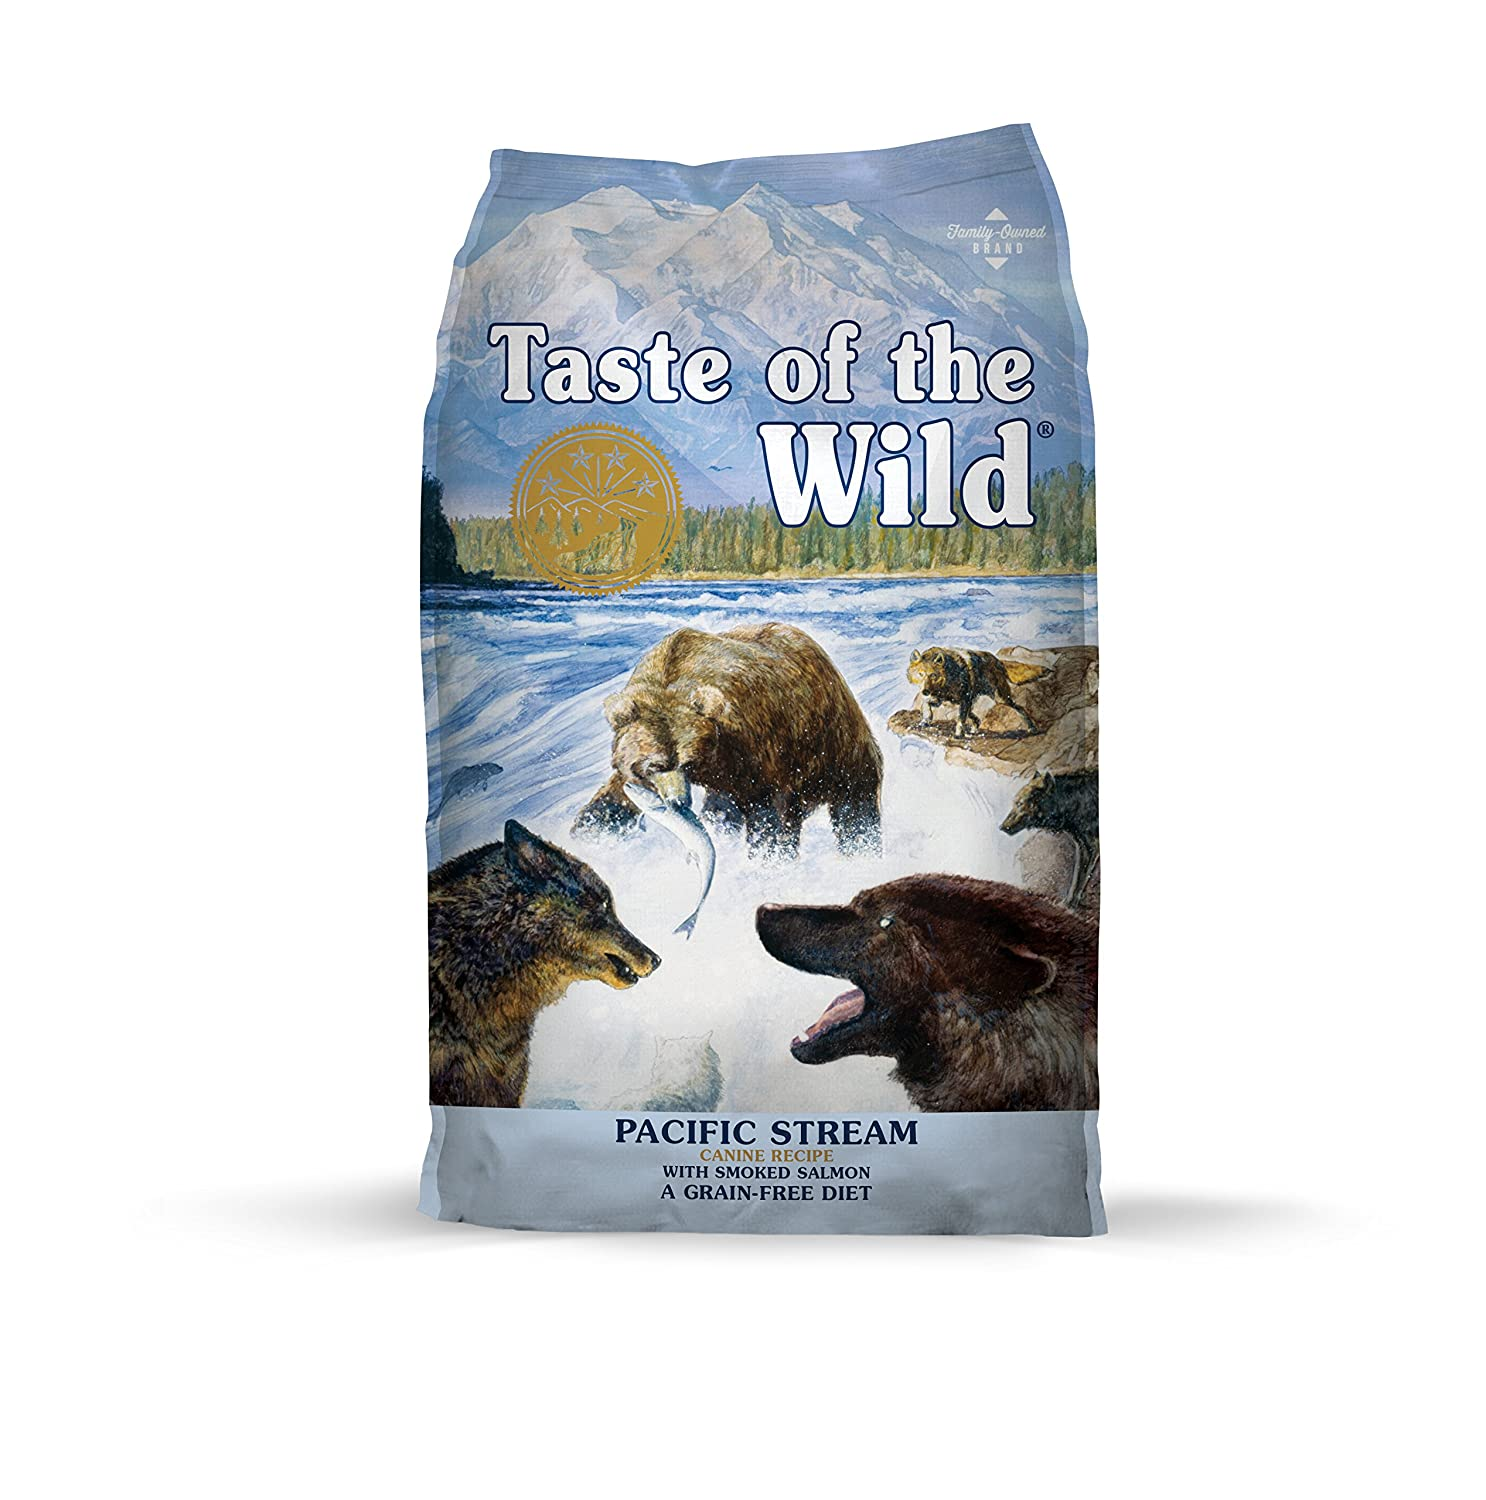 6. Taste of the Wild Pacific Stream Grain-Free Dry Dog Food